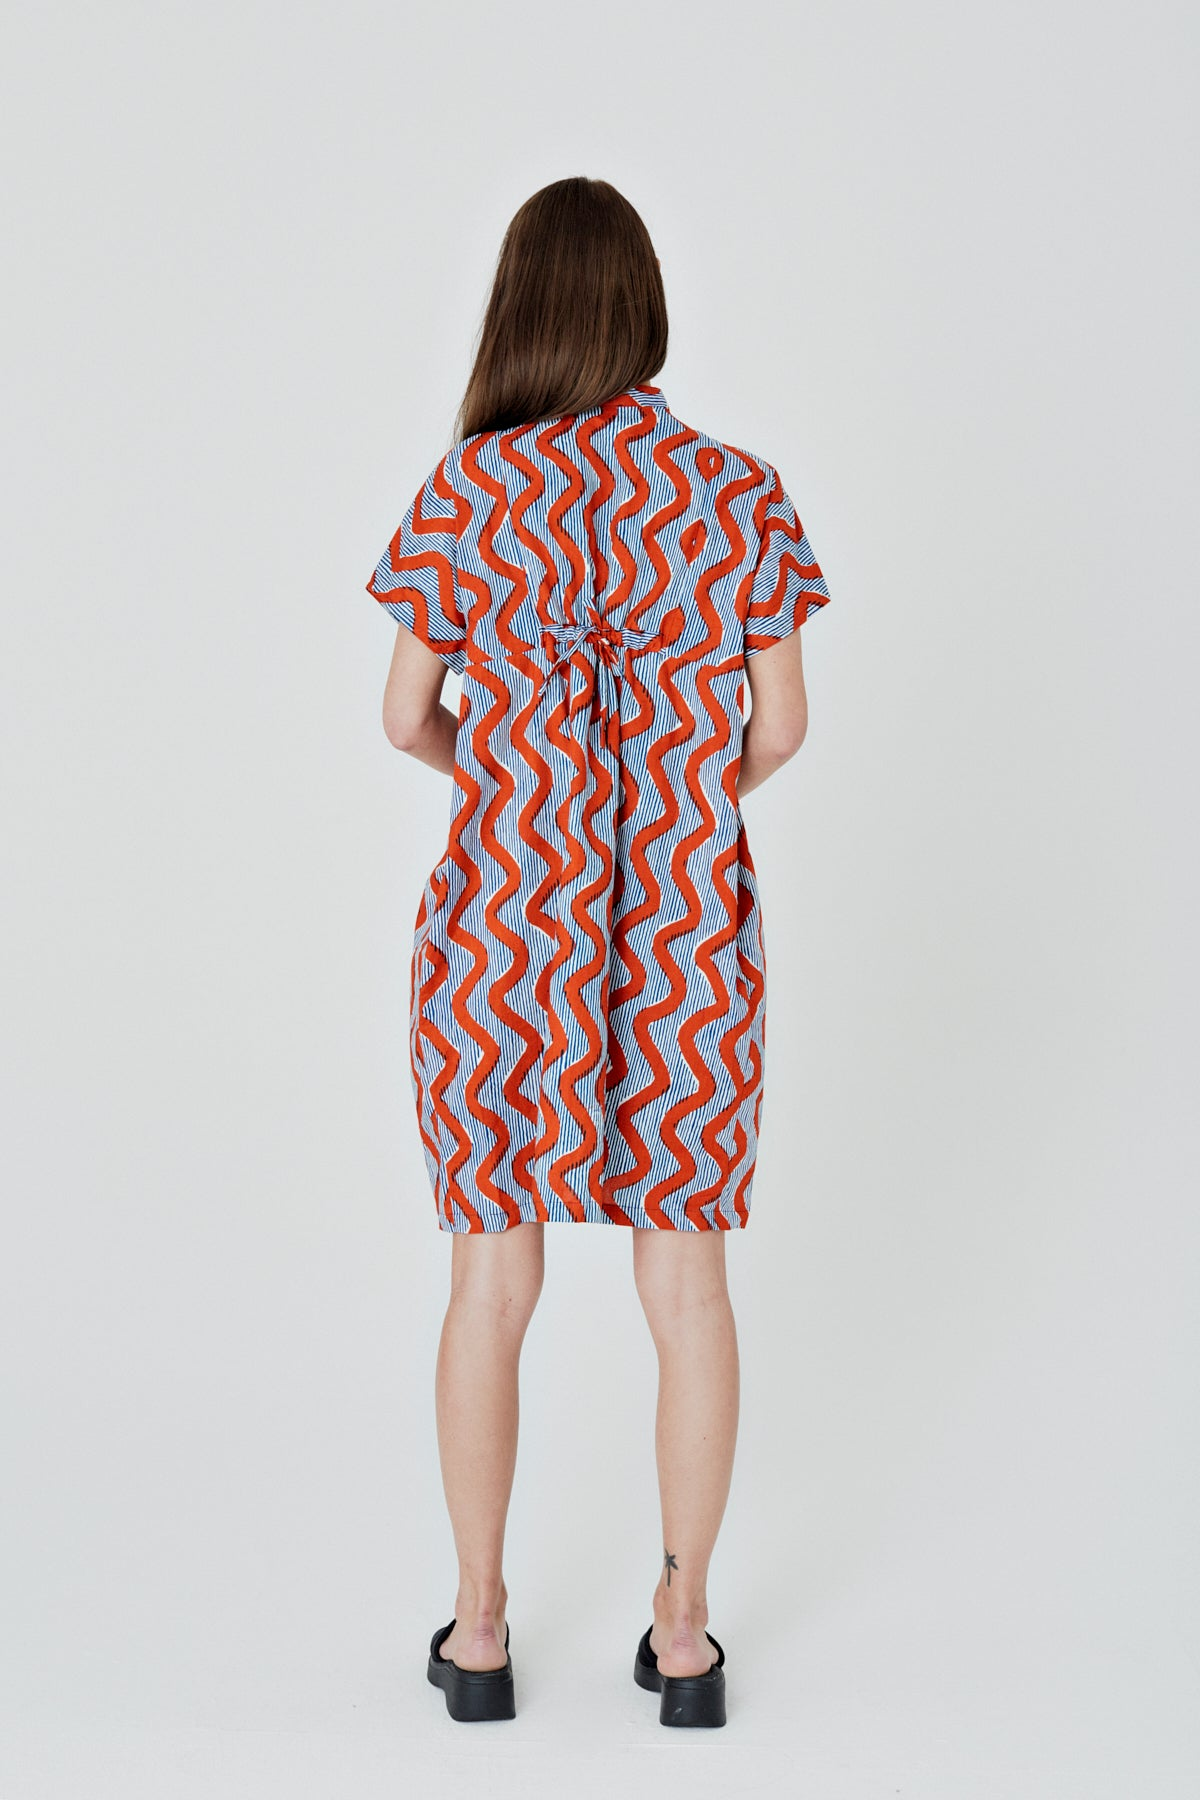 Bata Dress in Zig Zag